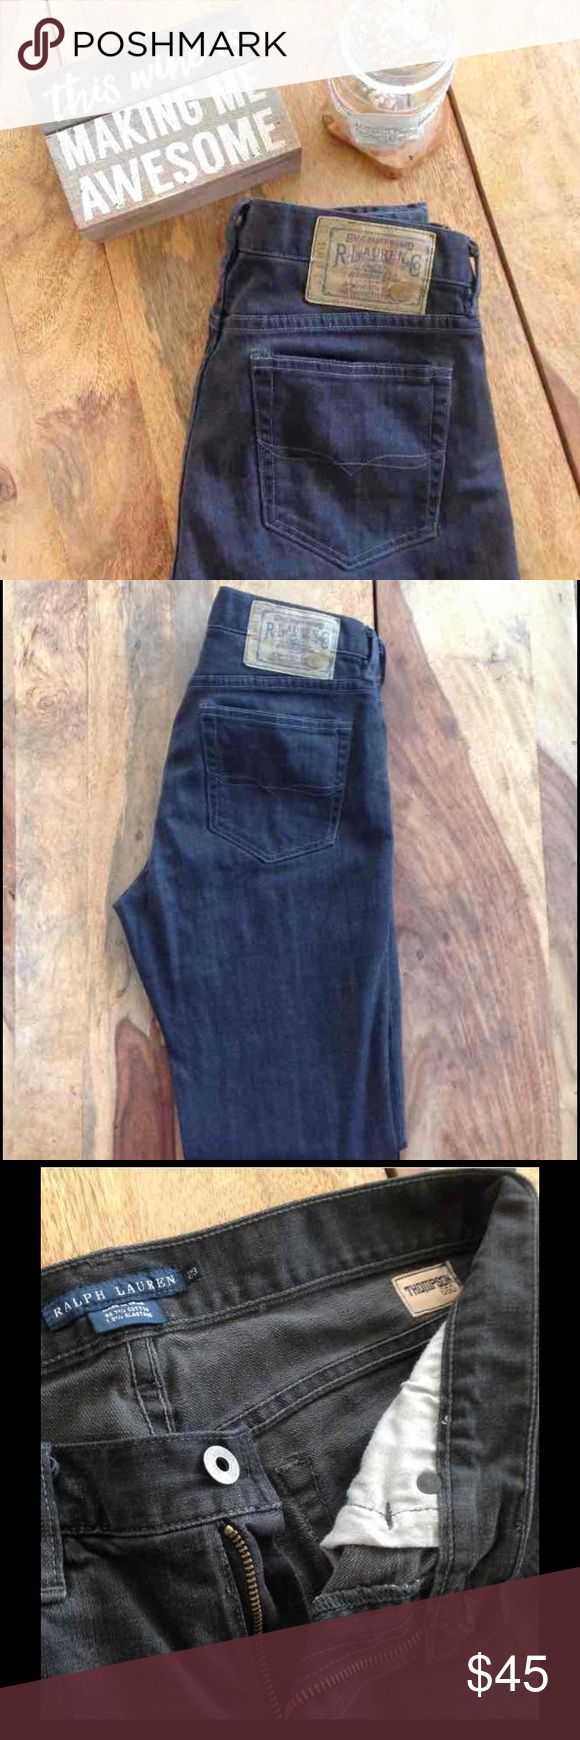 Ralph Lauren Thompson 650 Jeans: 29 These jeans are part of Ralph Lauren's blue label brand  Worn maybe once.  I'm selling the, because they never fit me.  Color is SLATE. Sold for less on Ⓜ️. Ralph Lauren Blue Label Jeans